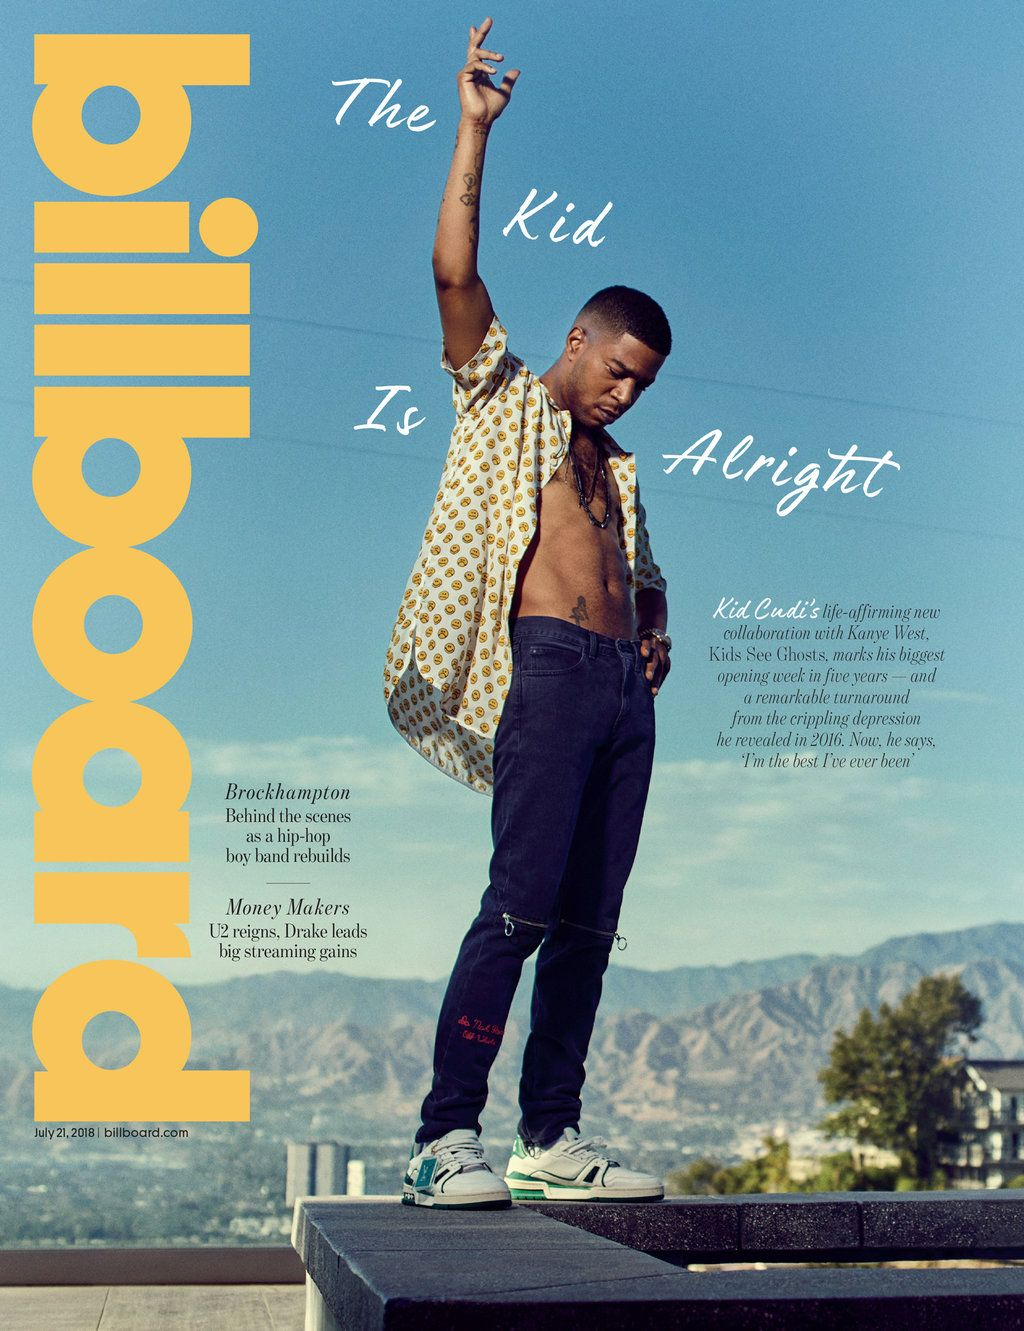 2018 The Covers (With images) Kid cudi, Billboard music